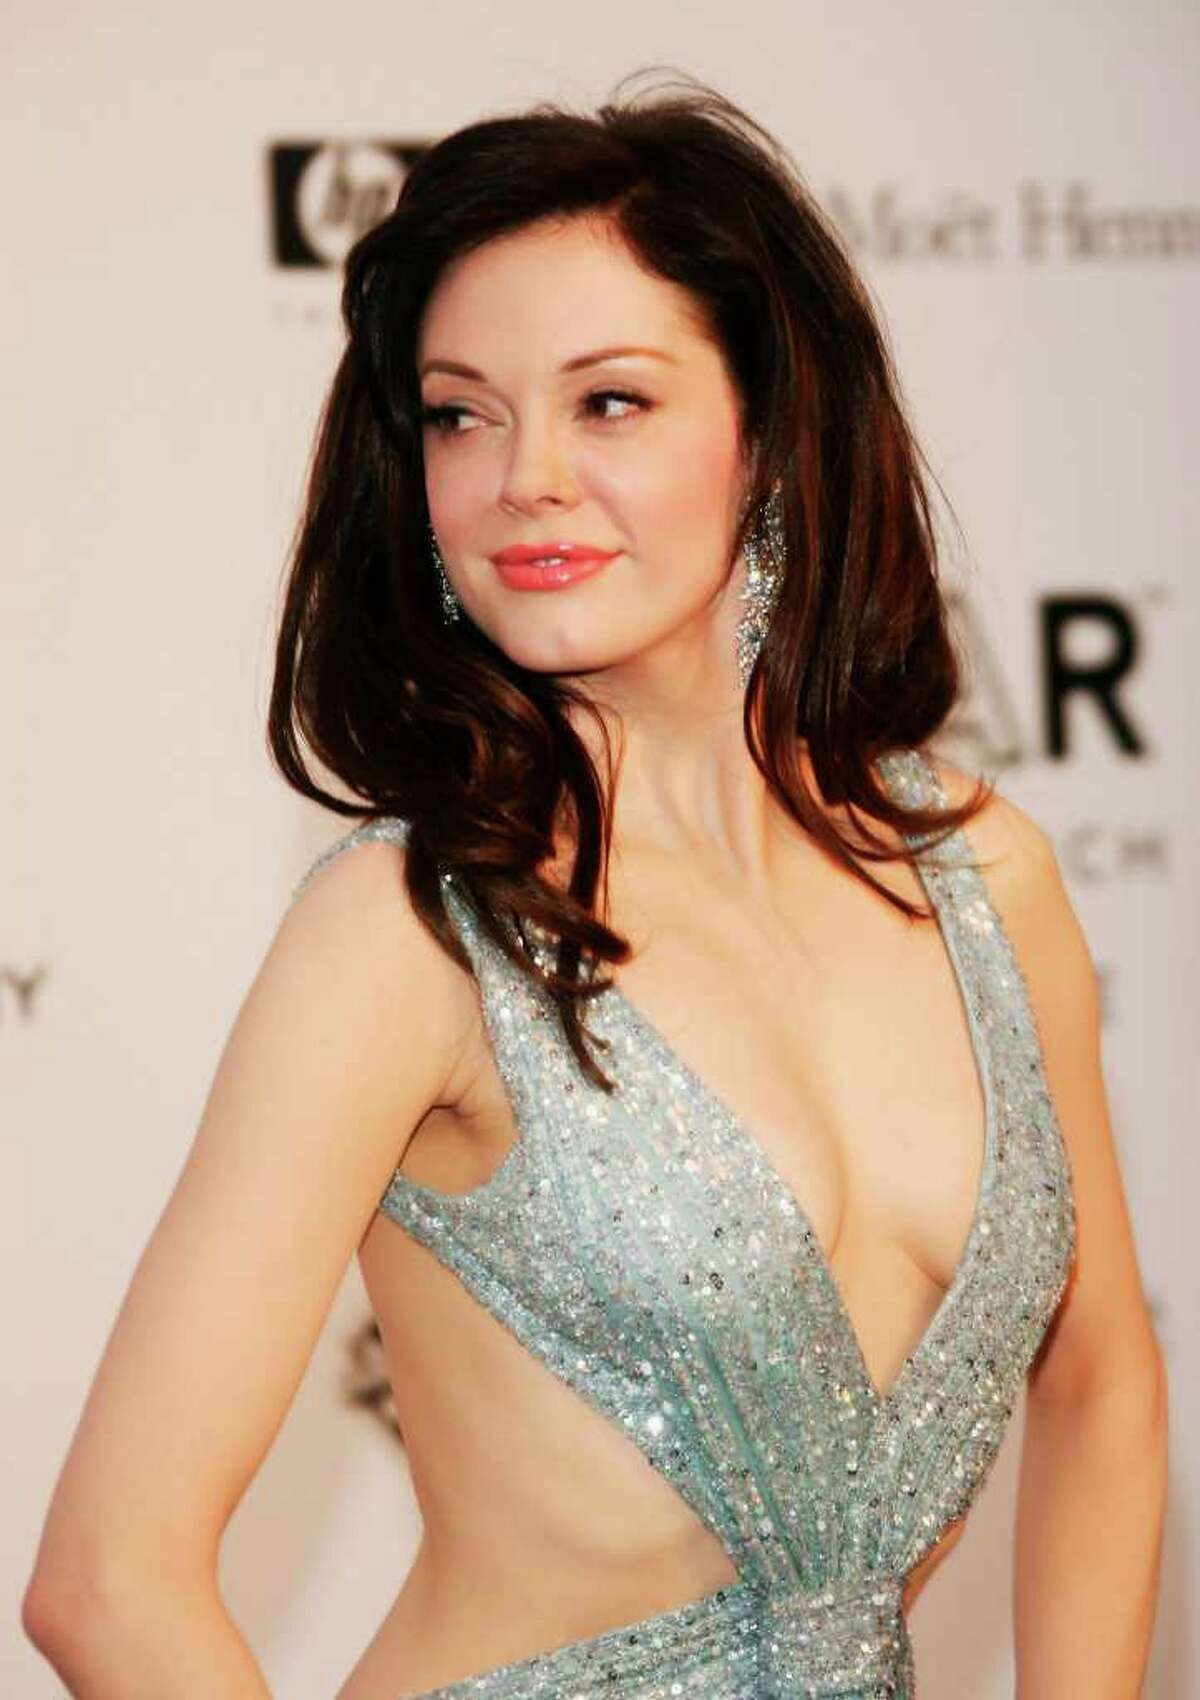 MOUGINS, FRANCE - MAY 23: Actress Rose McGowan arrives at the Cinema Against Aids 2007 in aid of amfAR at Le Moulin de Mougins in Mougings on May 23, 2007 in Cannes, France. The amfAR foundation raises funds for research, education and treatment of AIDS / HIV worldwide. (Photo by Pascal Le Segretain/Getty Images) *** Local Caption *** Rose McGowan